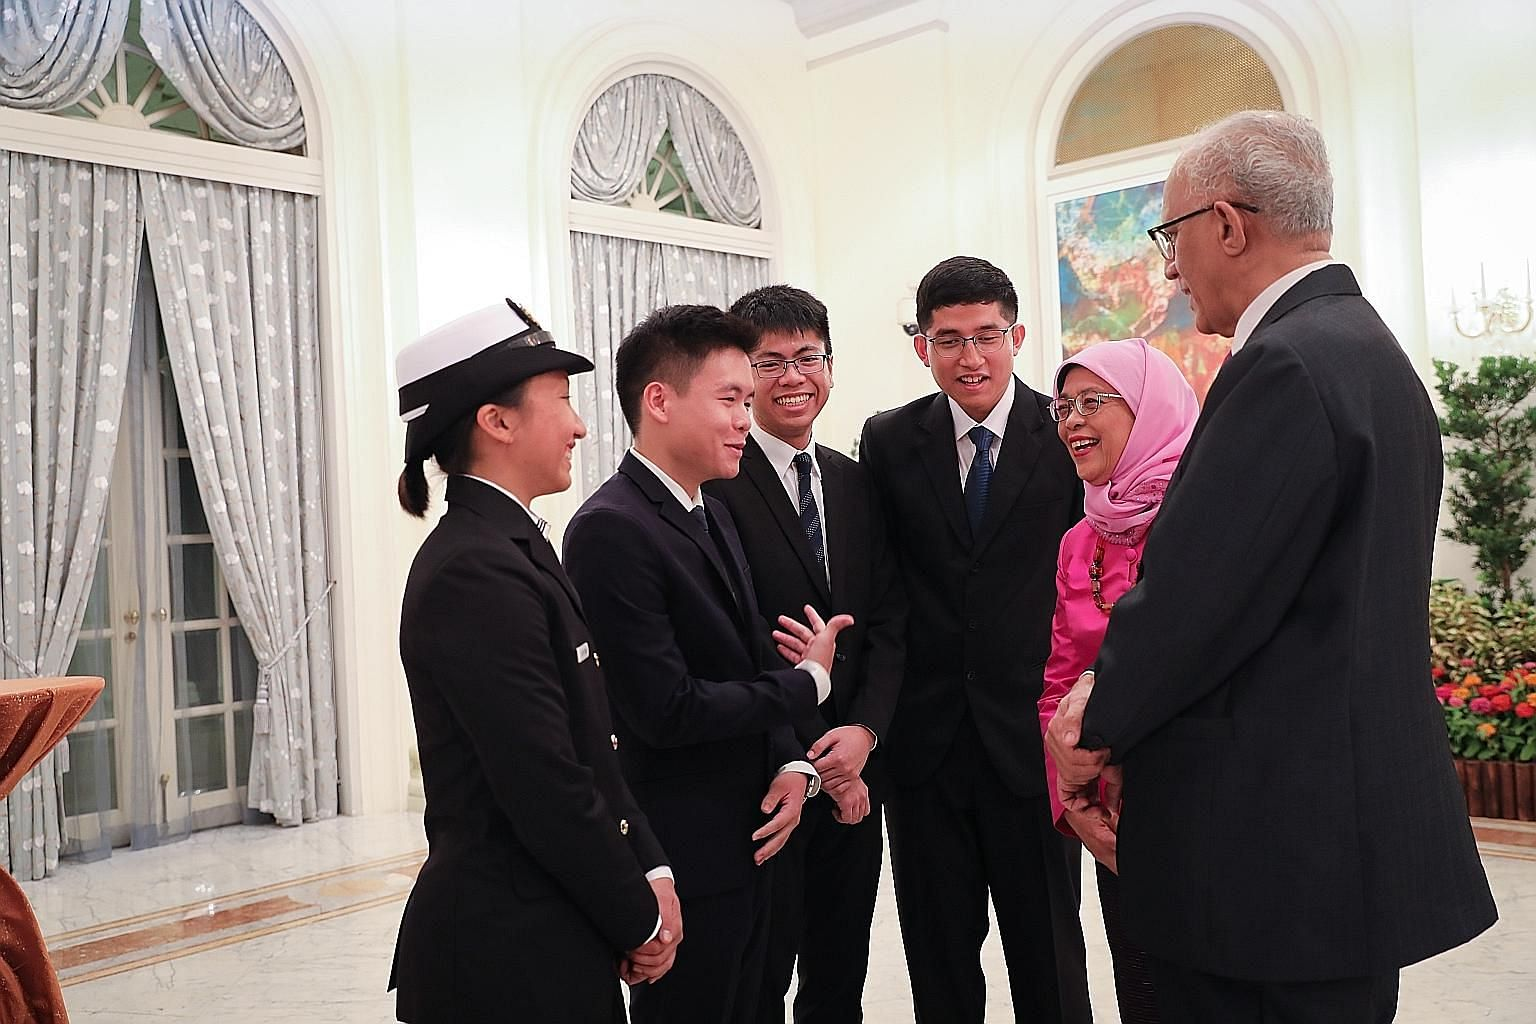 President Halimah Yacob and her husband, Mr Mohamed Abdullah Alhabshee, with this year's President's Scholarship recipients (from far left) Allison Tan Sue Min; Siow Mein Yeak, Yue; John Chua Je En; and Muhammad Dhafer Muhammad Faishal at the Istana